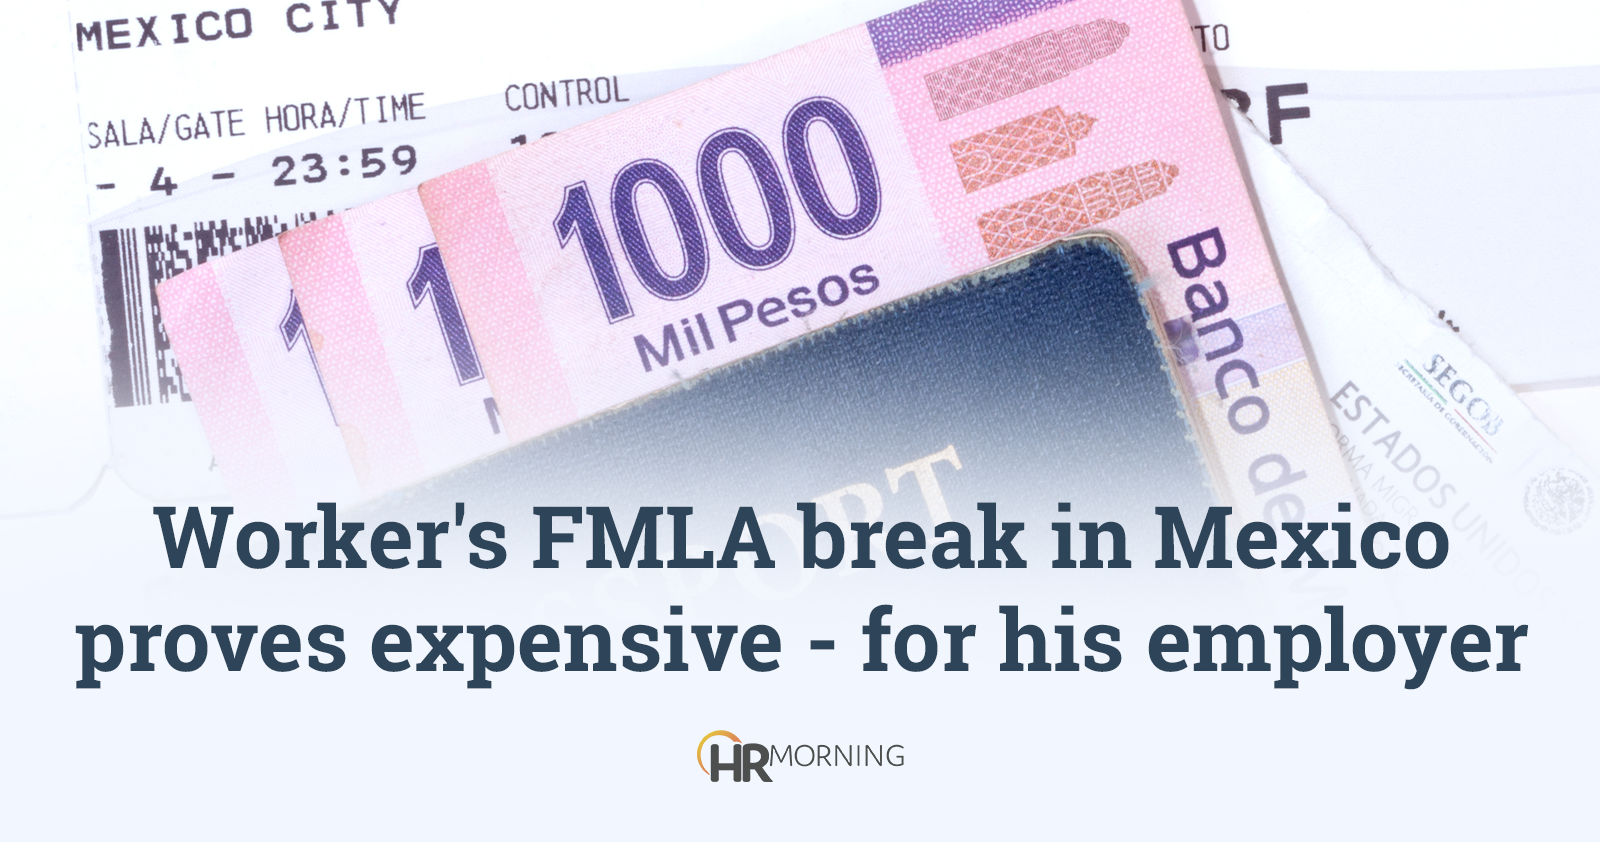 Worker's FMLA break in Mexico proves expensive - for his employer